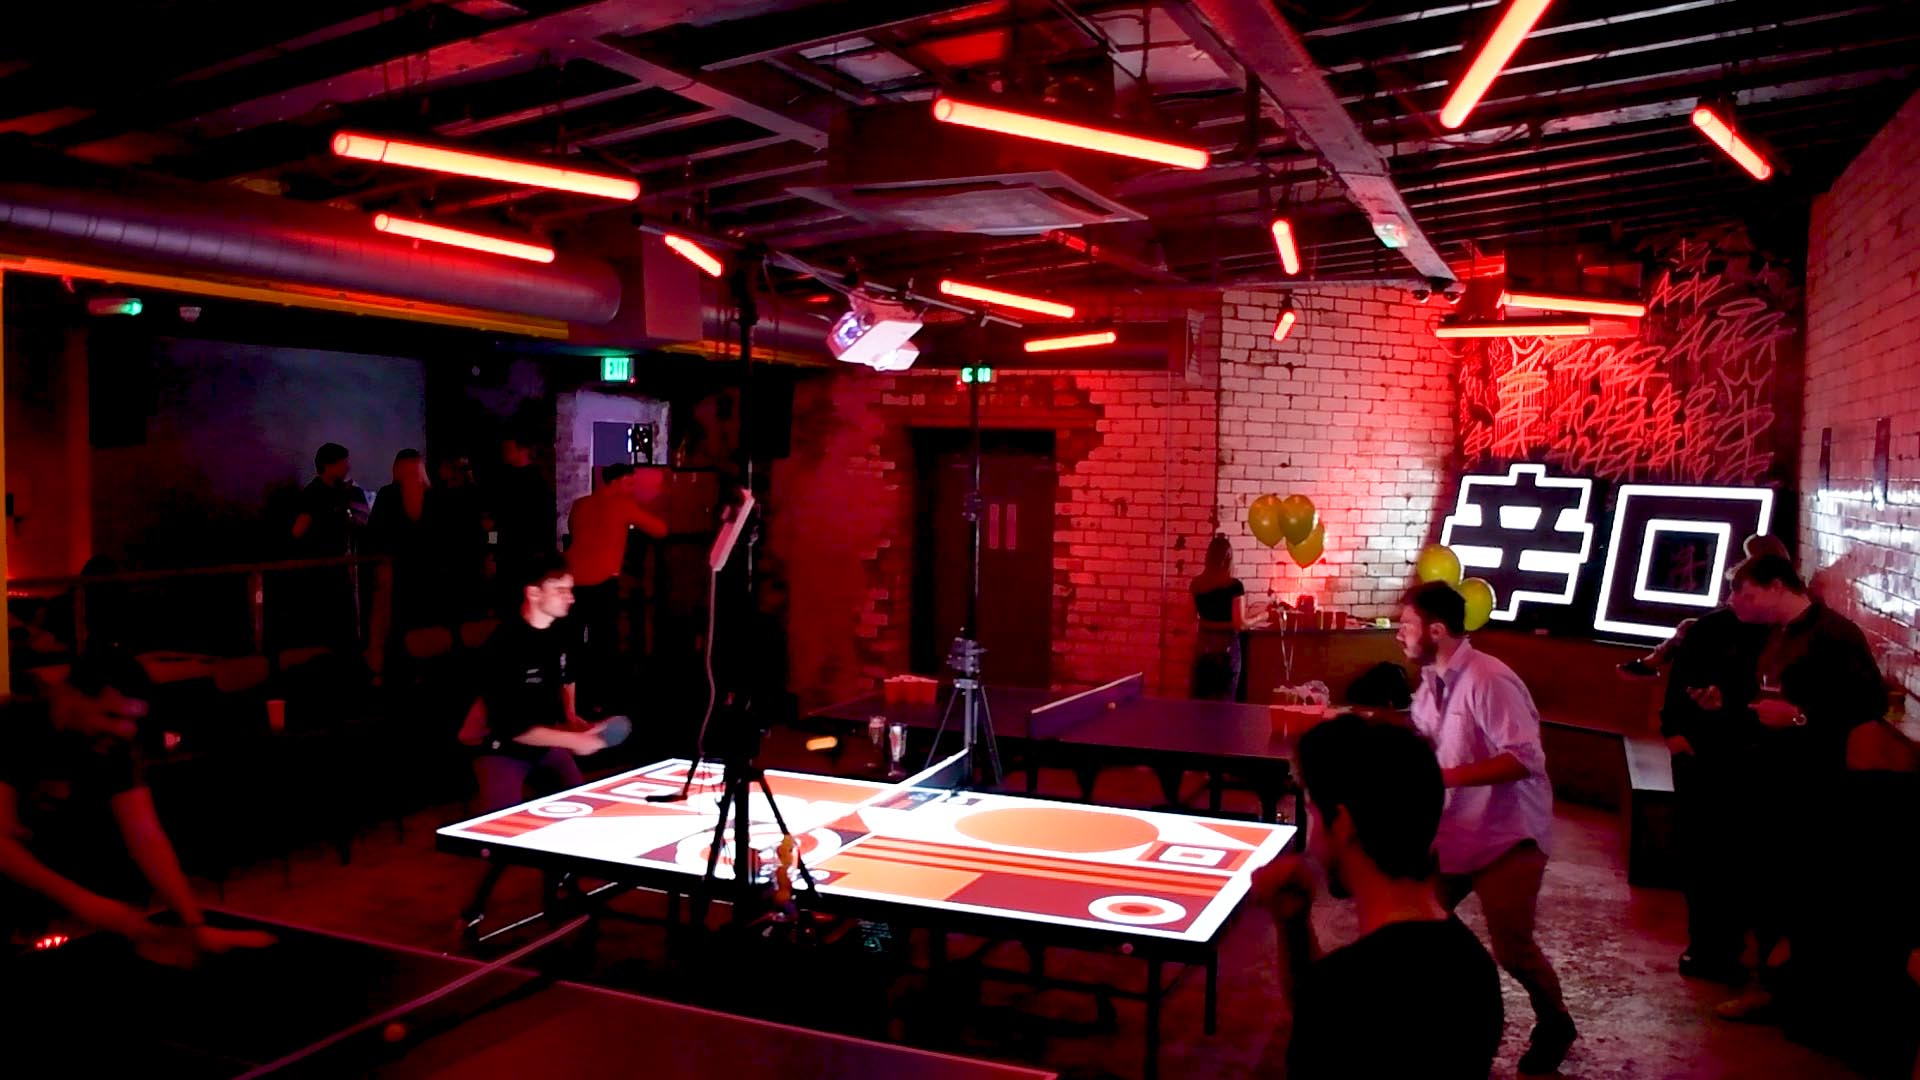 Asahi Interactive Ping Pong Table, with players and projection mapping